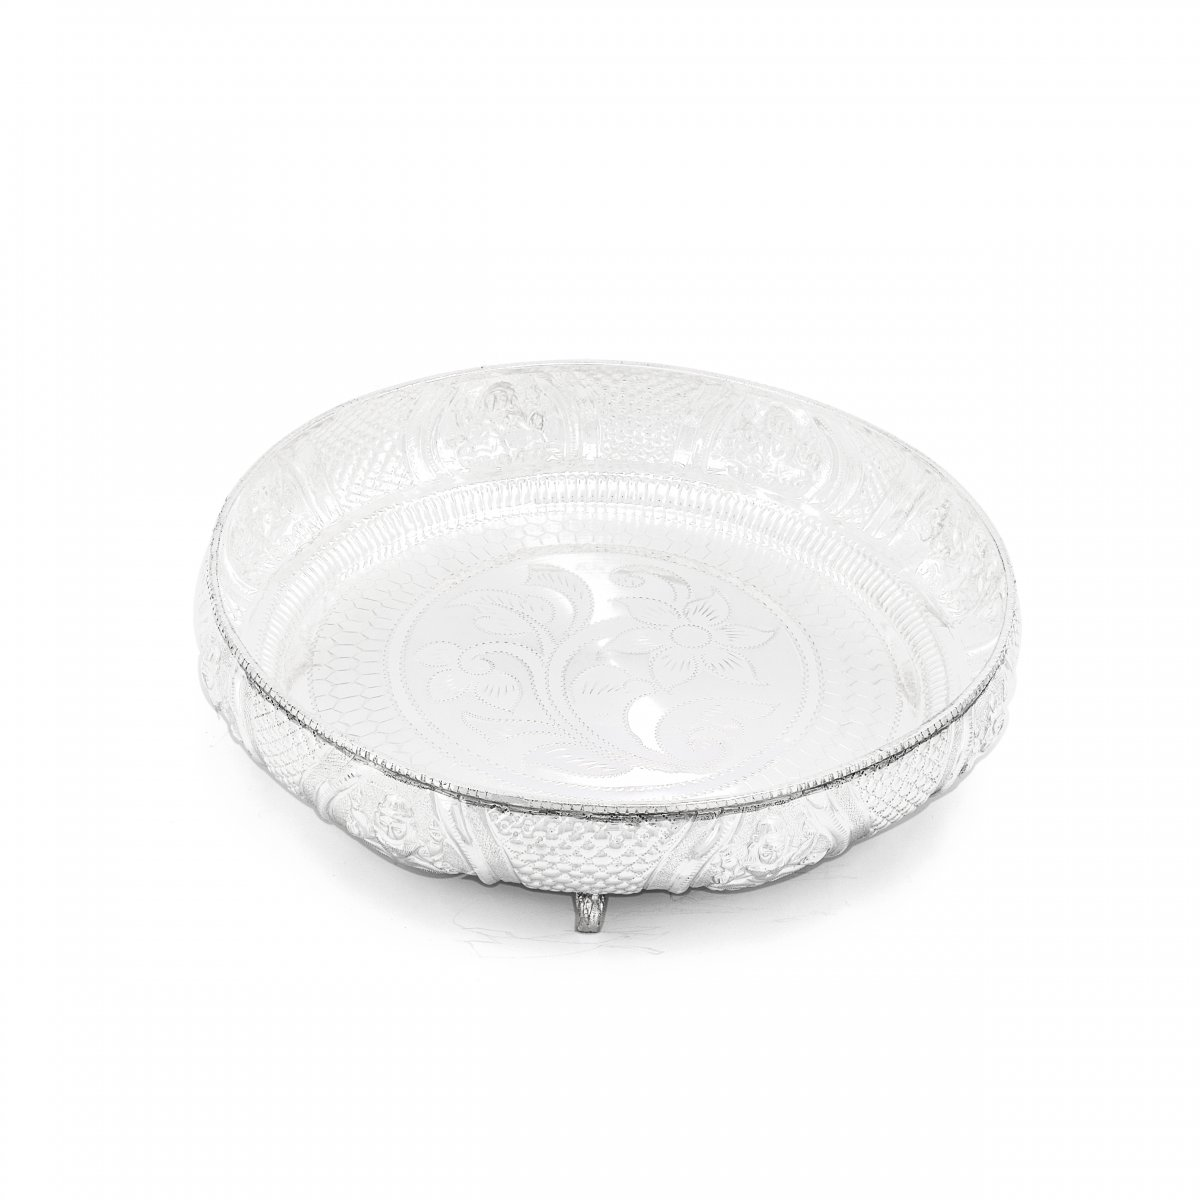 92.5 SILVER HAND CRAFTED PLATE FOR MULTI PURPOSE